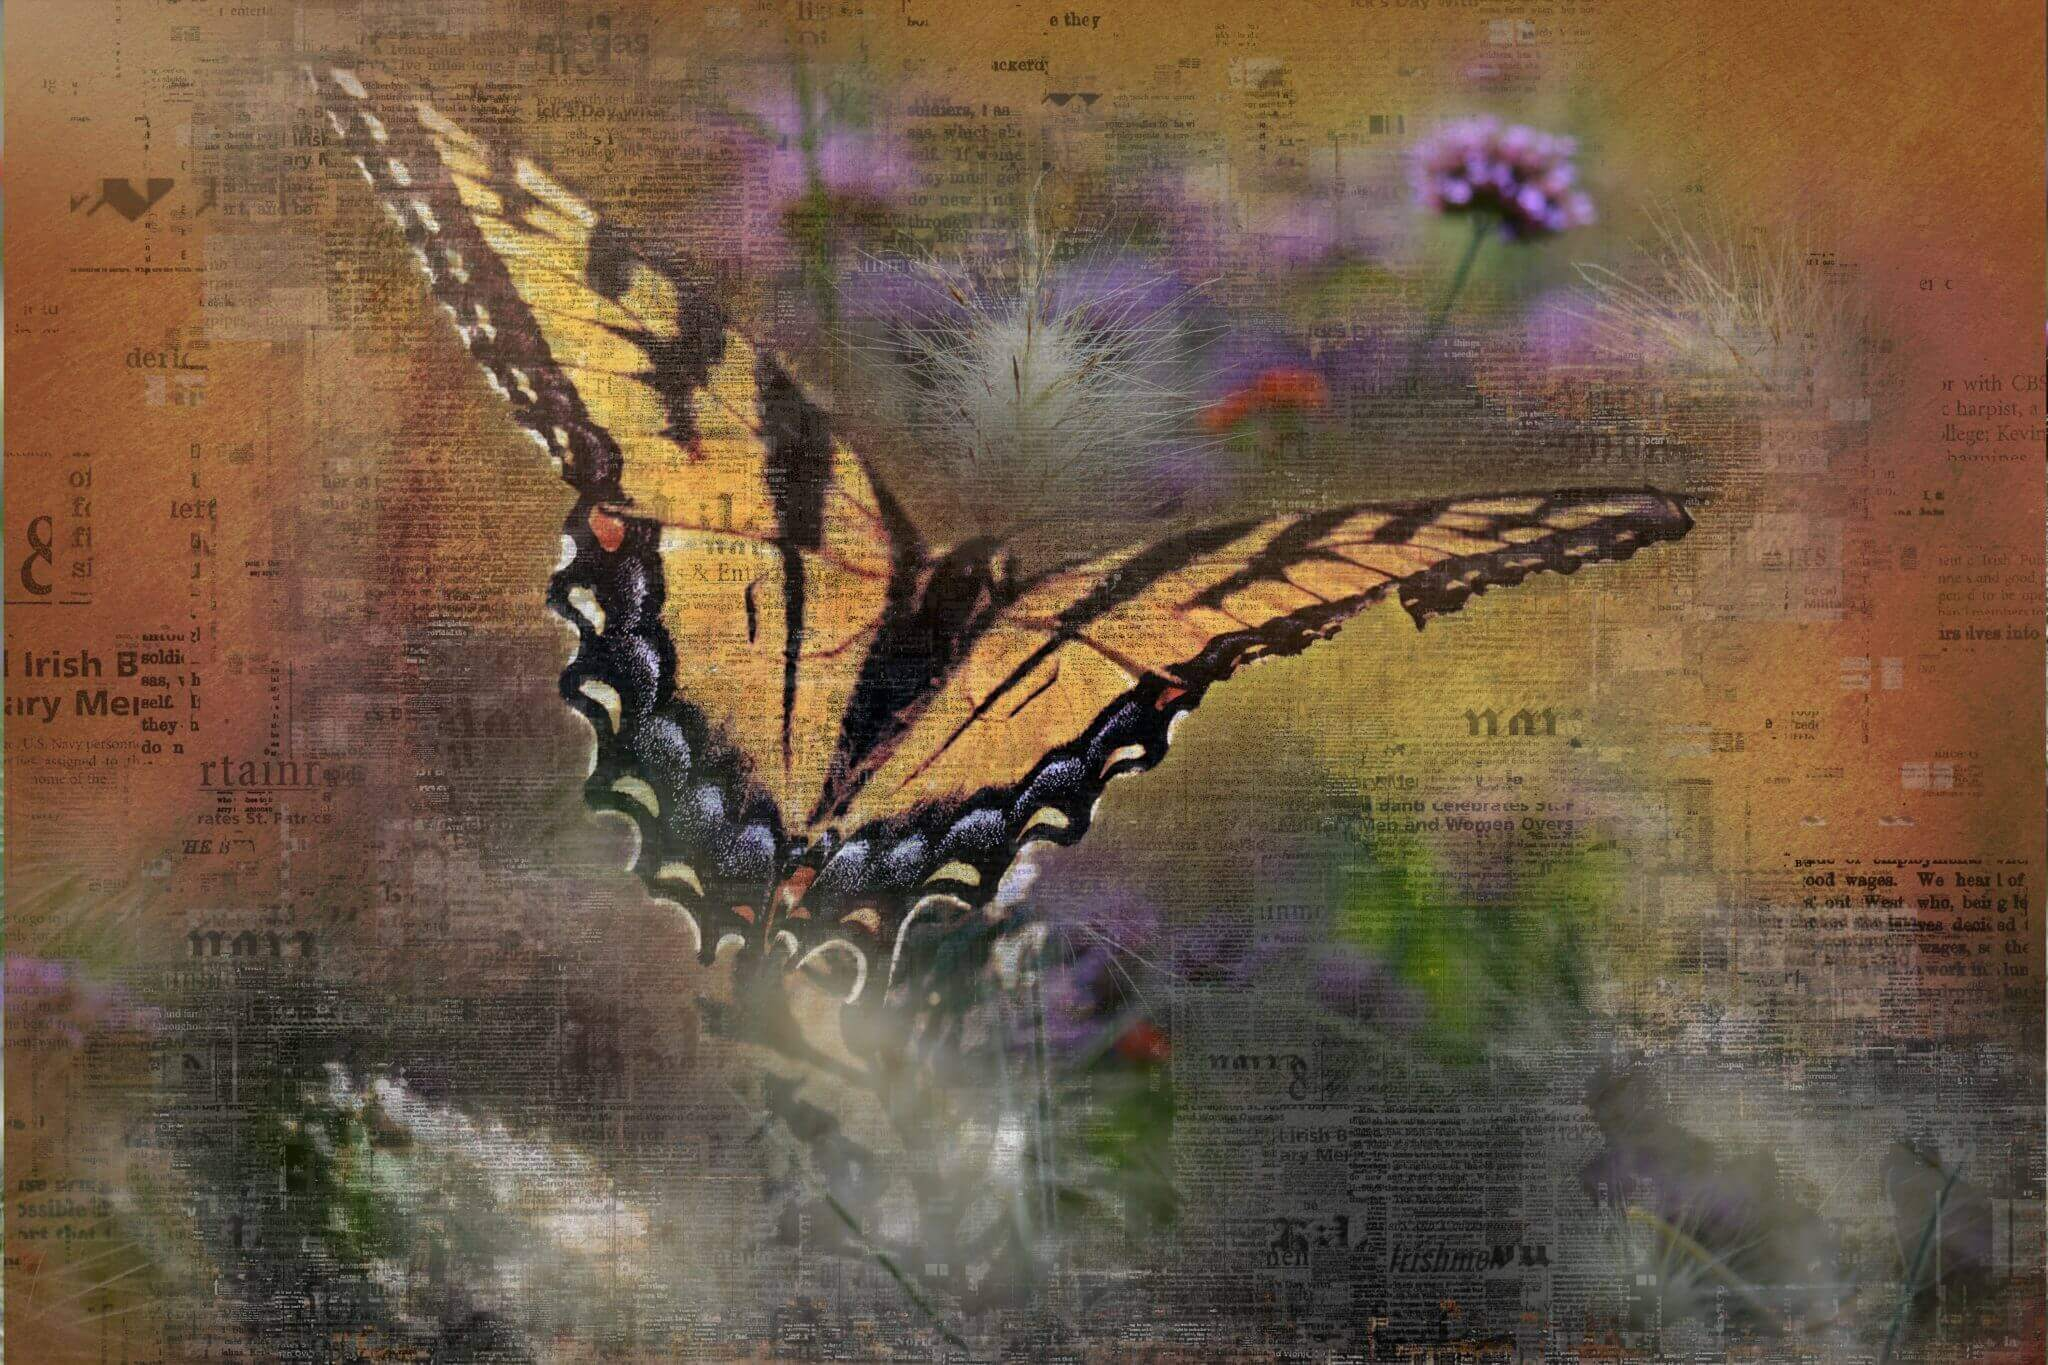 digital compostion with butterfly